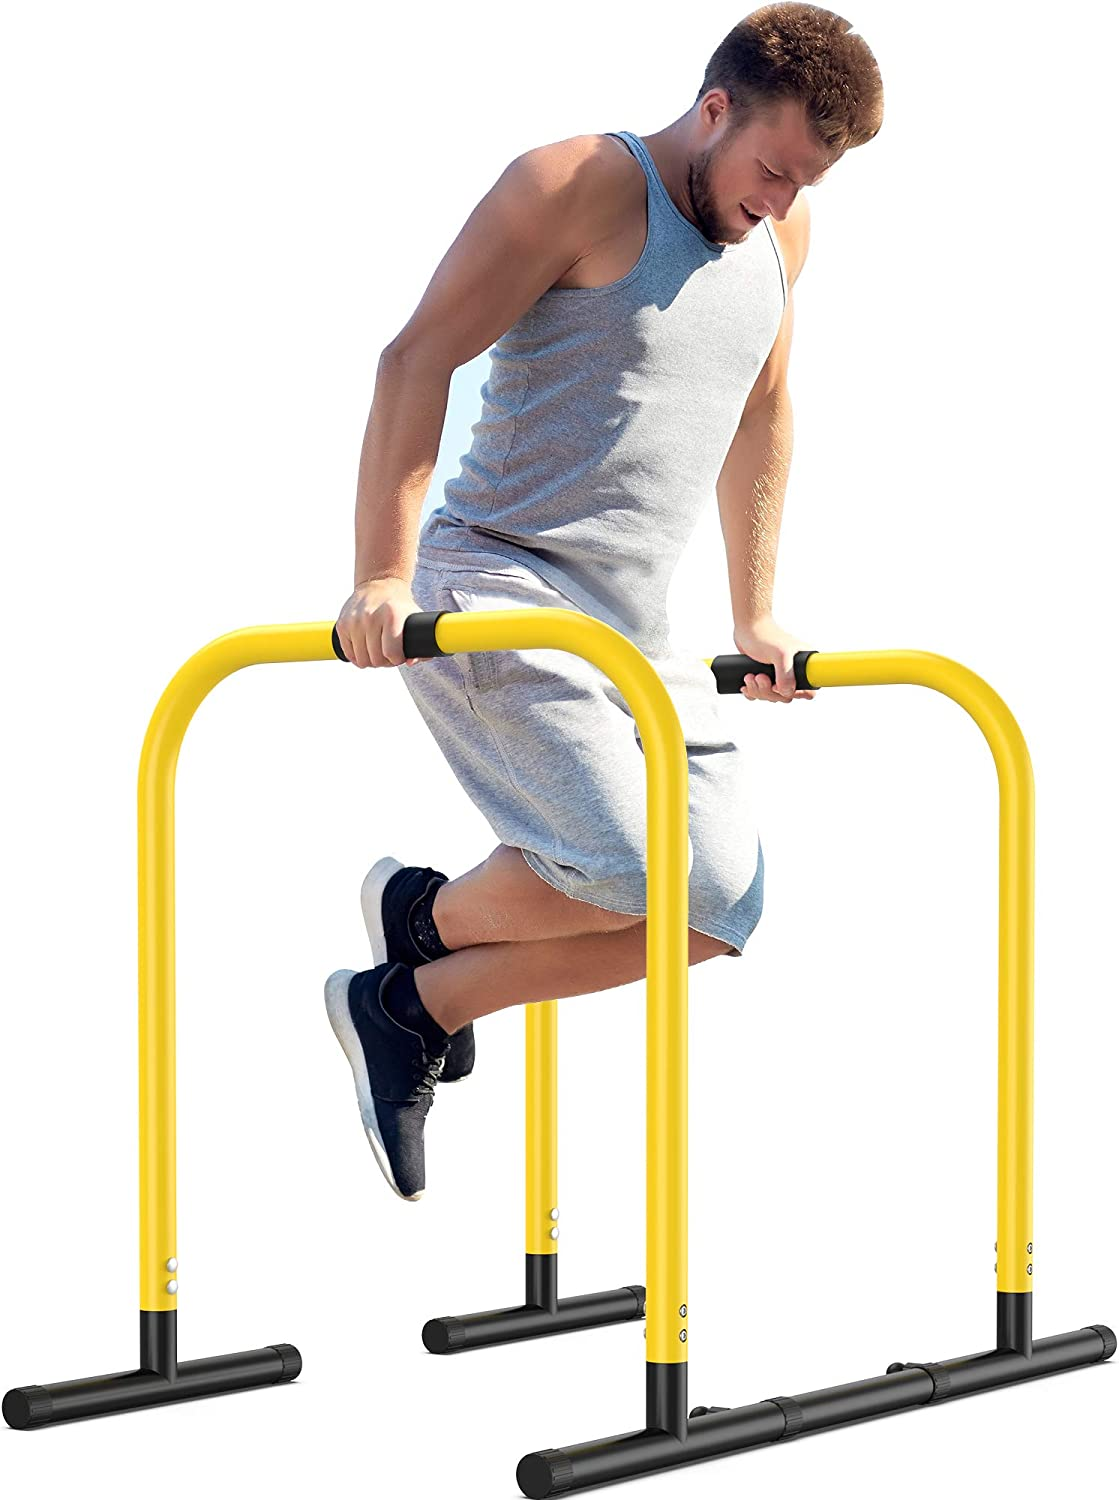 EveryMile Dip Stand Station, Adjustable Dip Bar with Safety Connectors, Heavy Duty Strength Training Parallel Bar for Full Body Workout, Pull up, Push up, L-Sits Home Gym Outdoor Bar Exercises